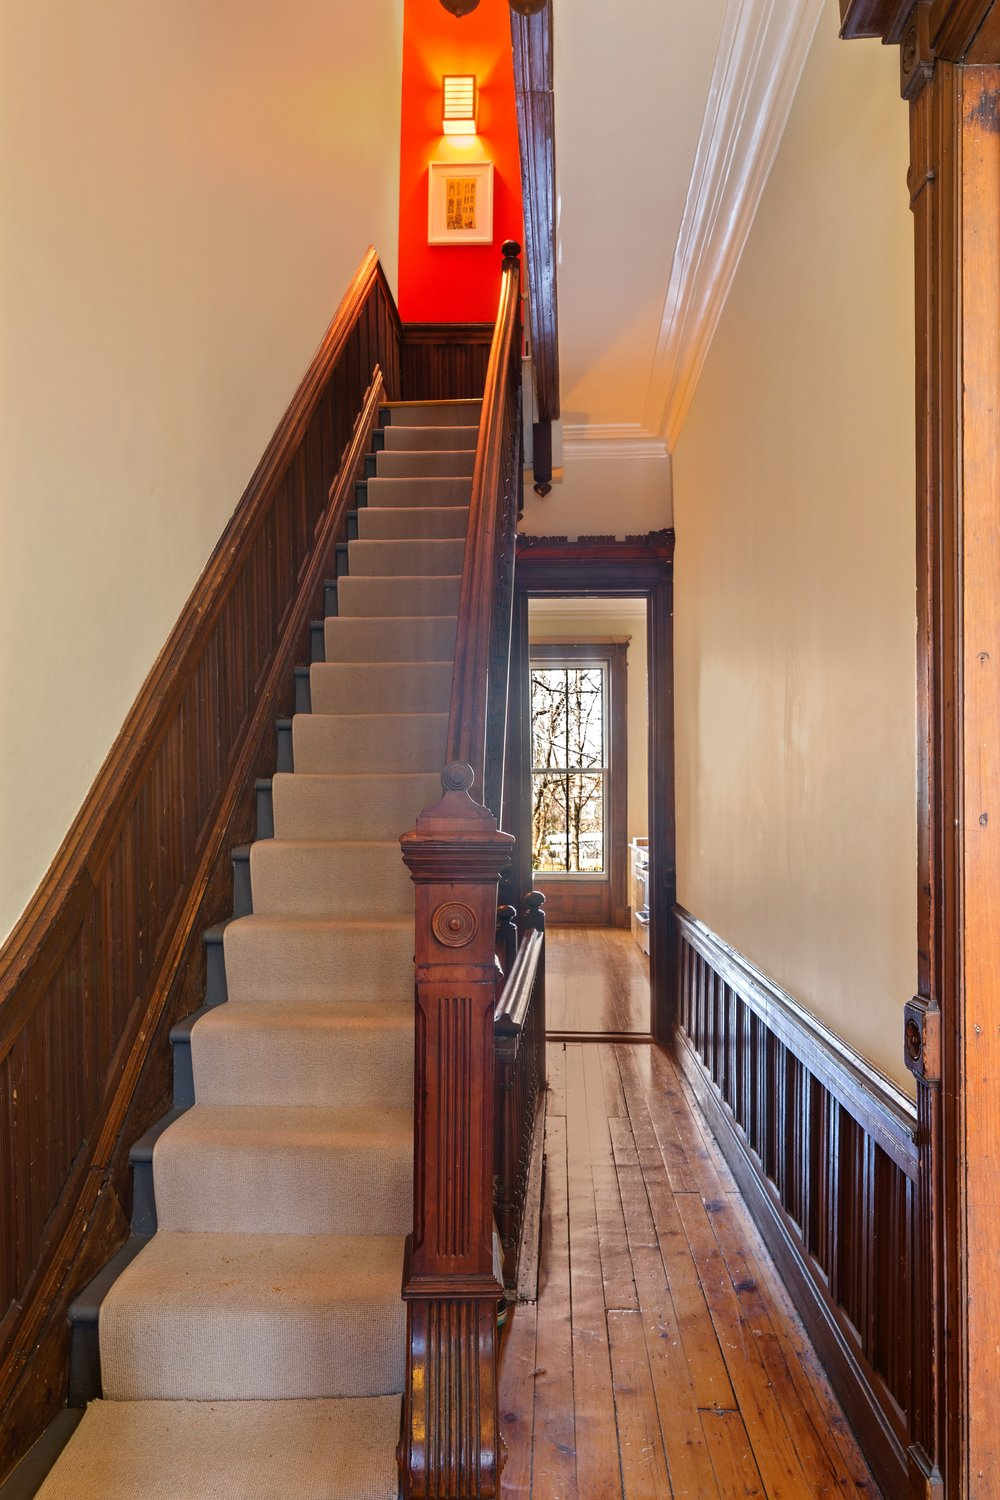 11_151WilloughbyAve_68001_Staircase_HiRes.jpg